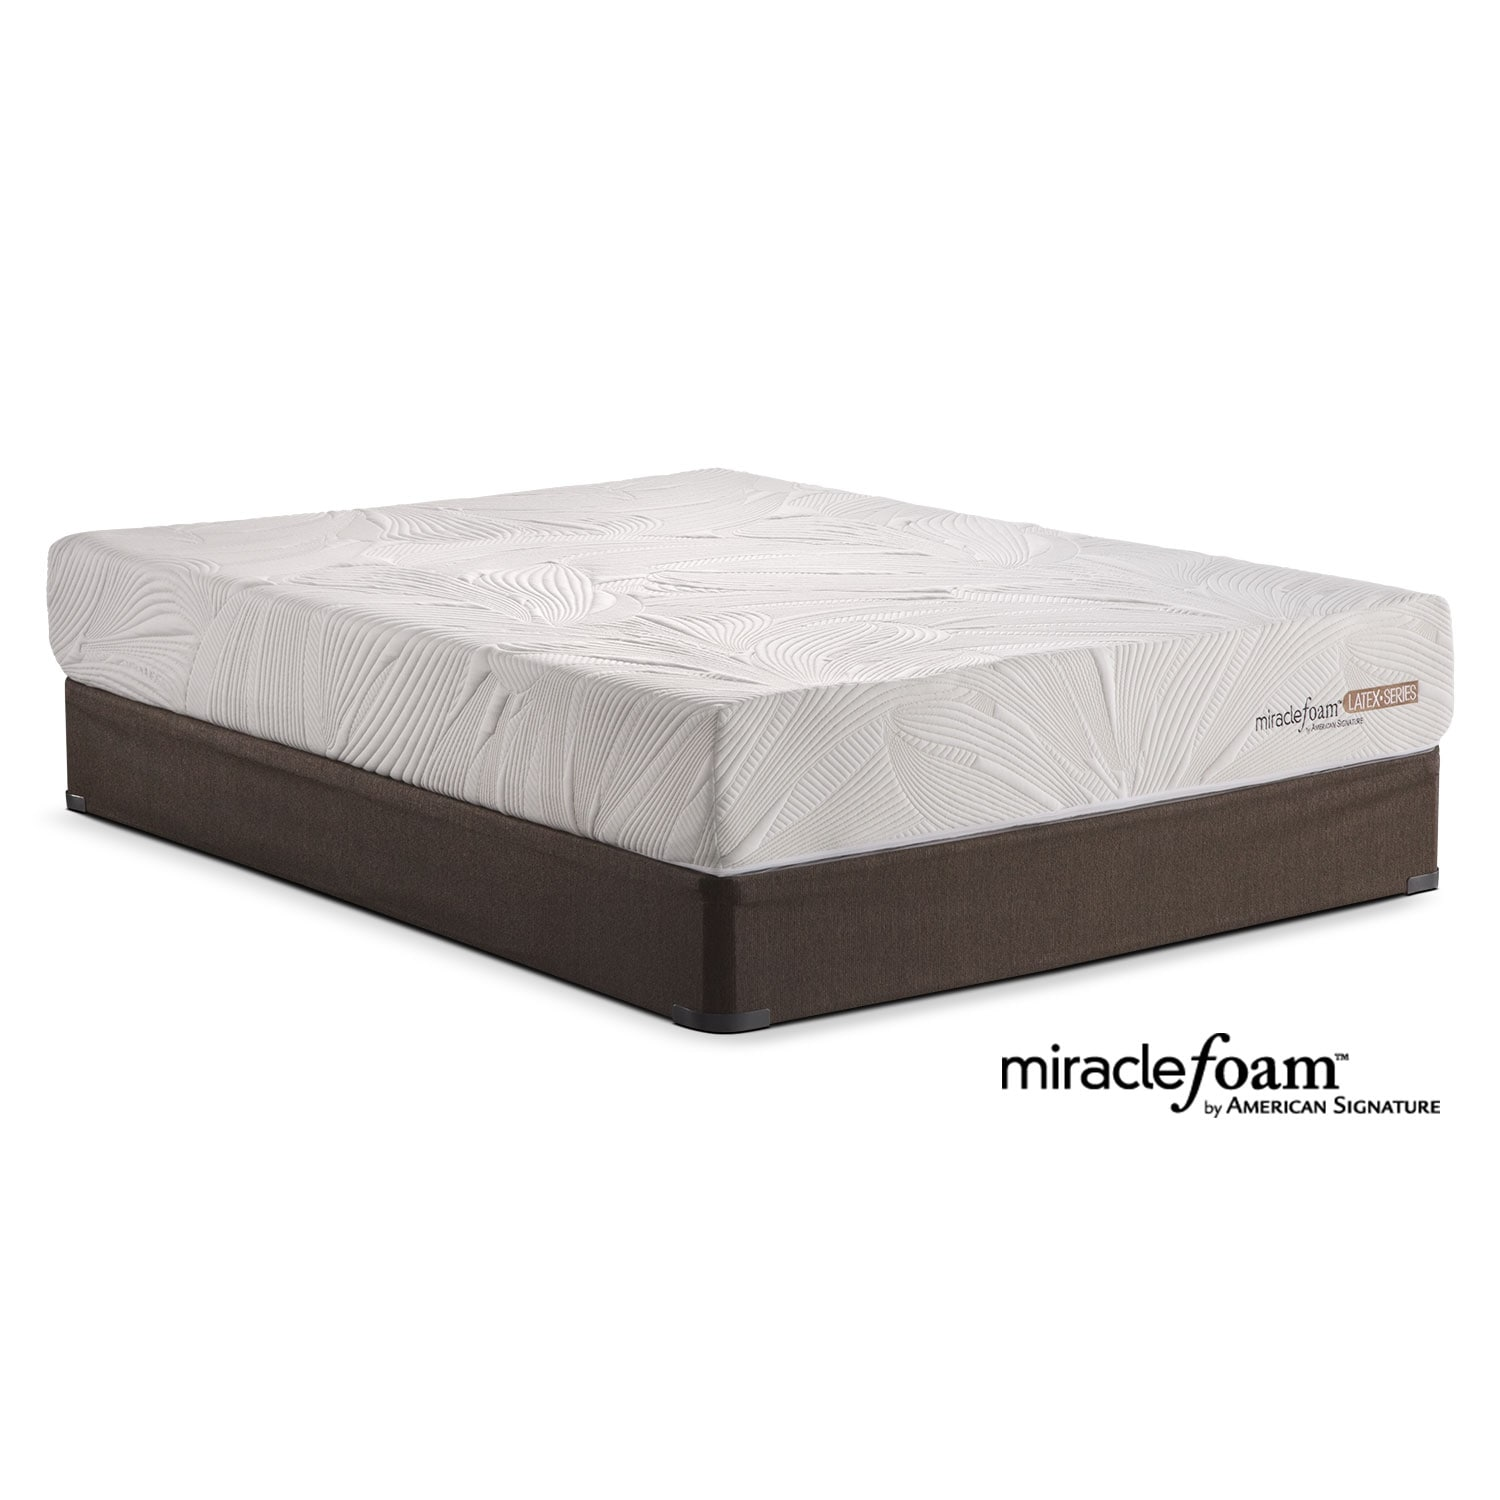 Mattresses and Bedding - Tranquil Twin Mattress and Foundation Set